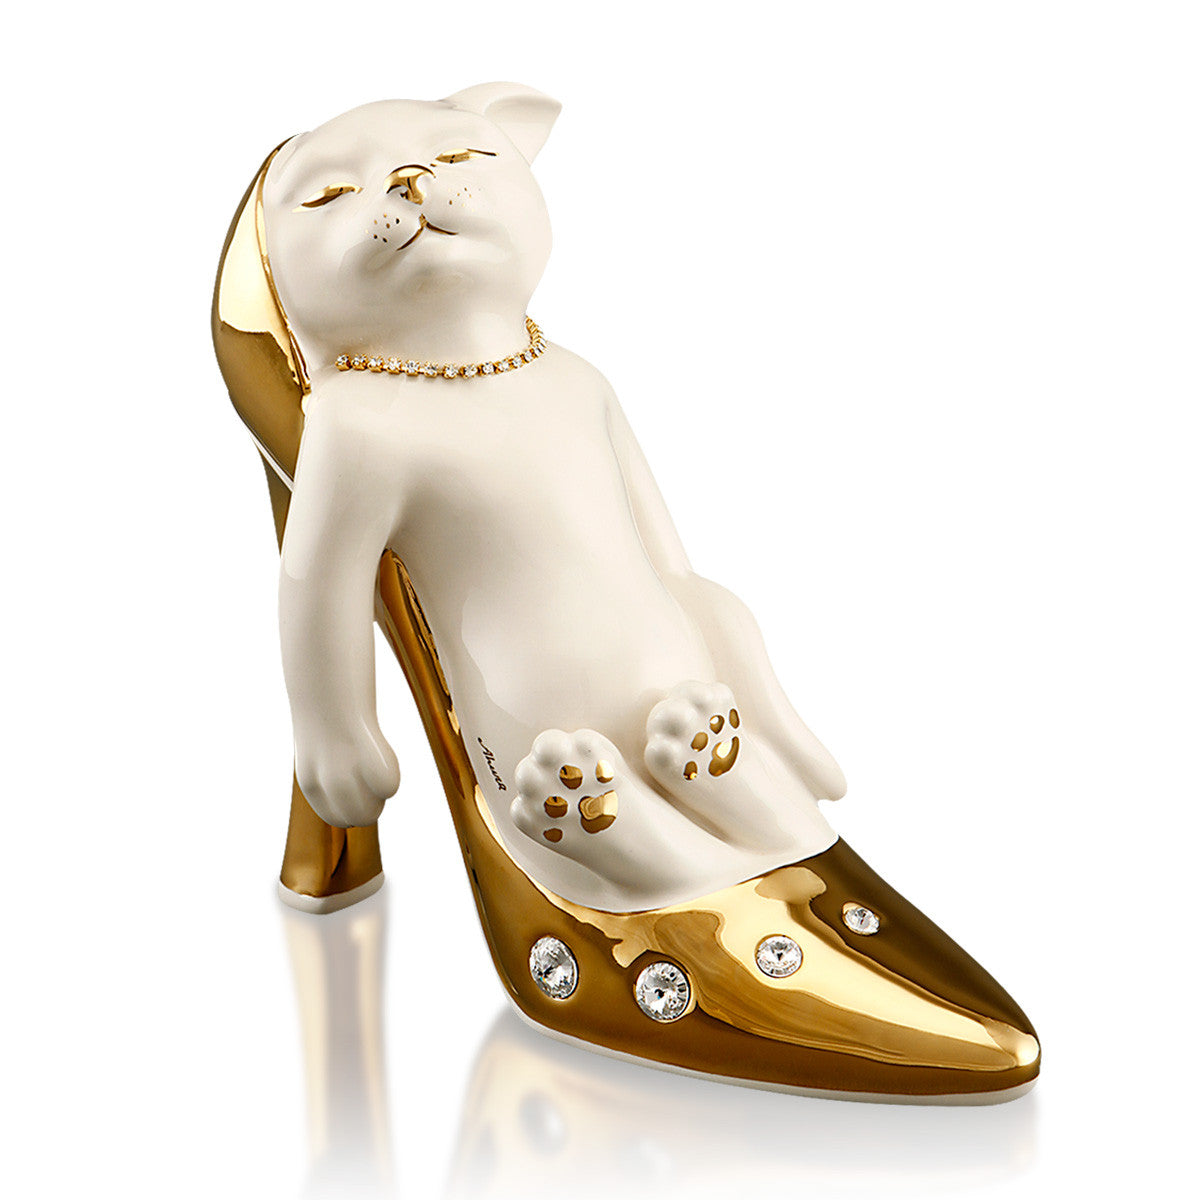 ceramic porcelain cat inside shoe in pure gold with swarovski gift handmade in Italy